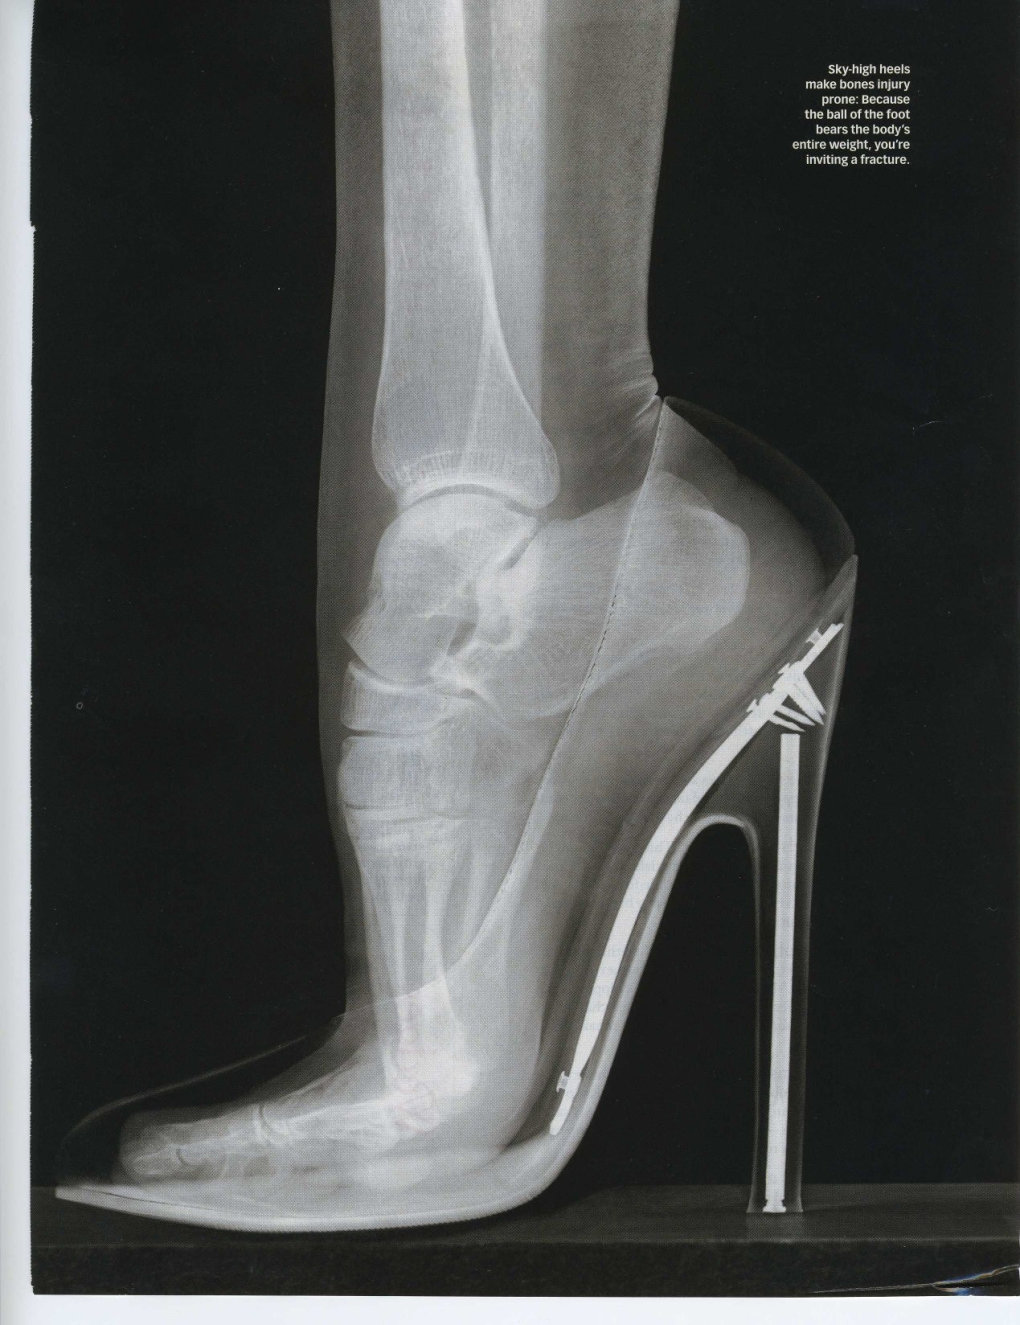 high heels xray truly dont know women are able walk around